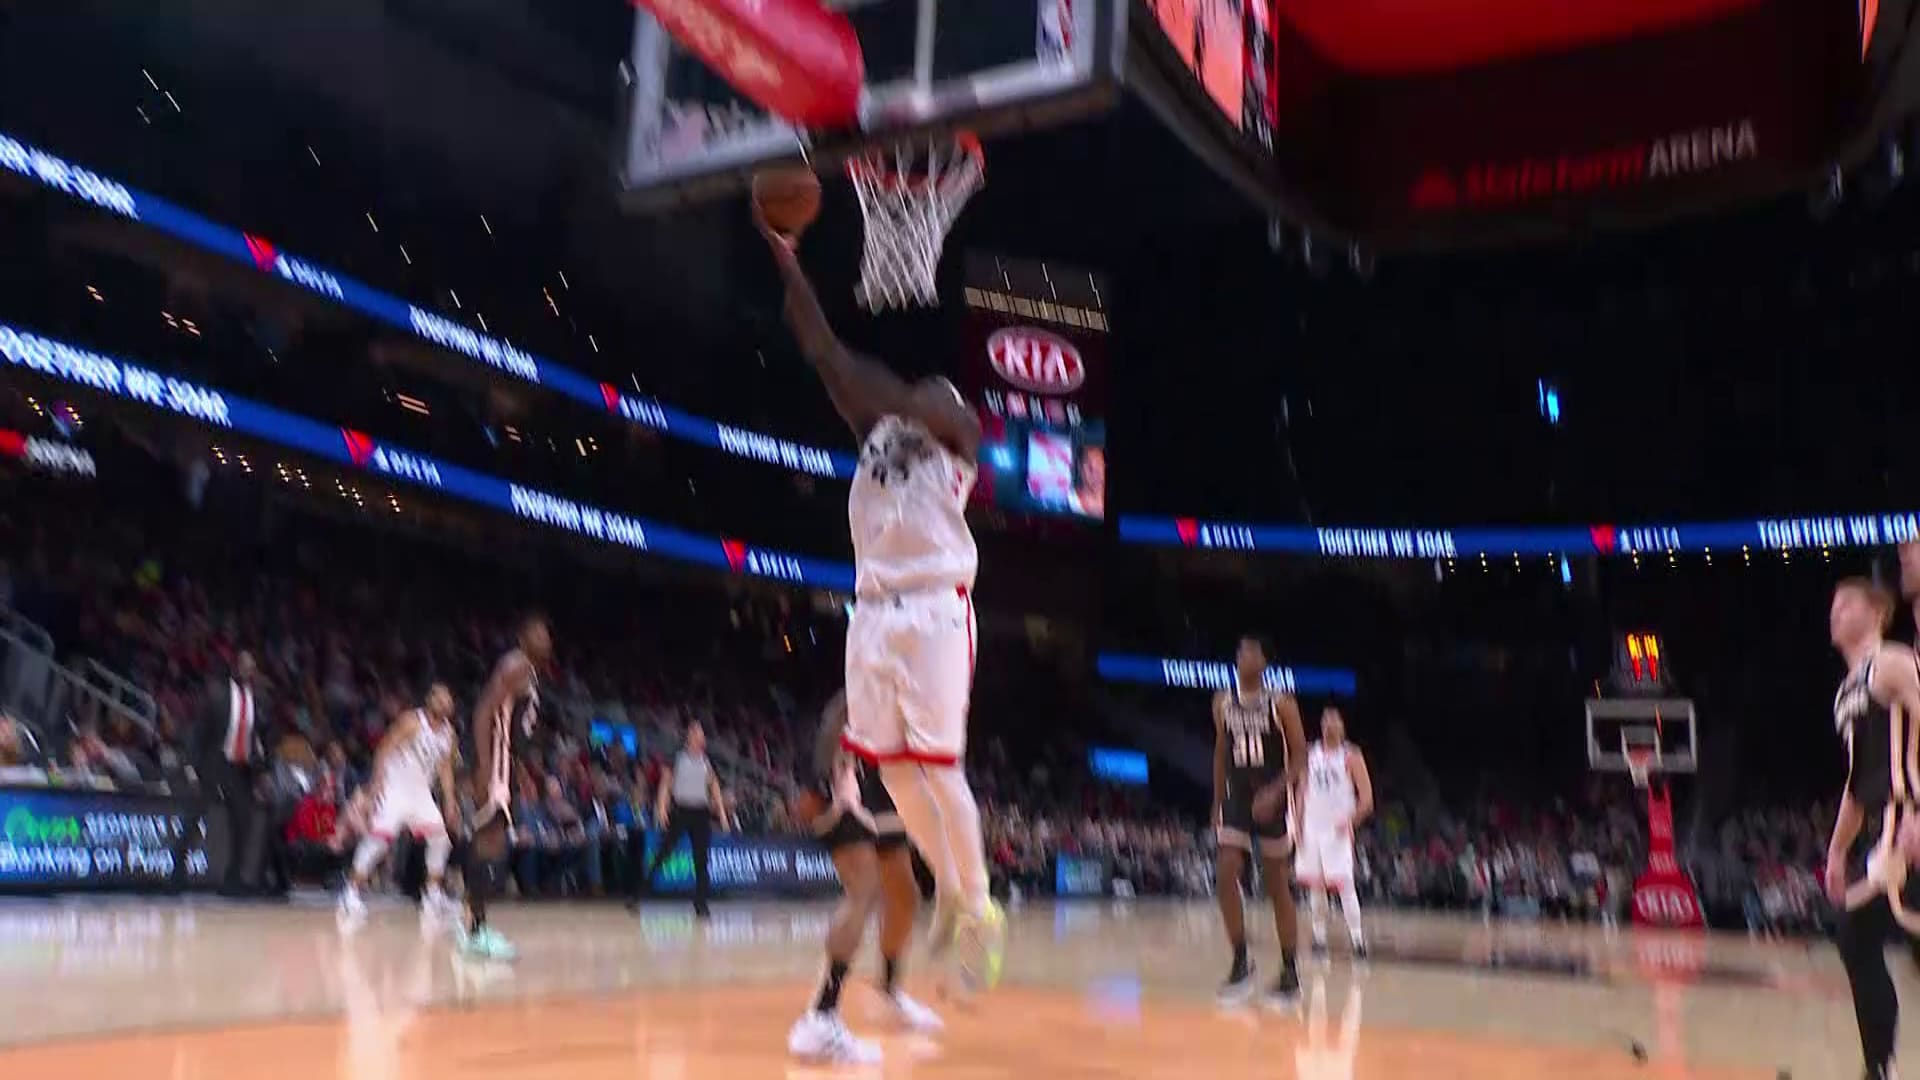 Raptors Highlights: Siakam Layup - January 20, 2020